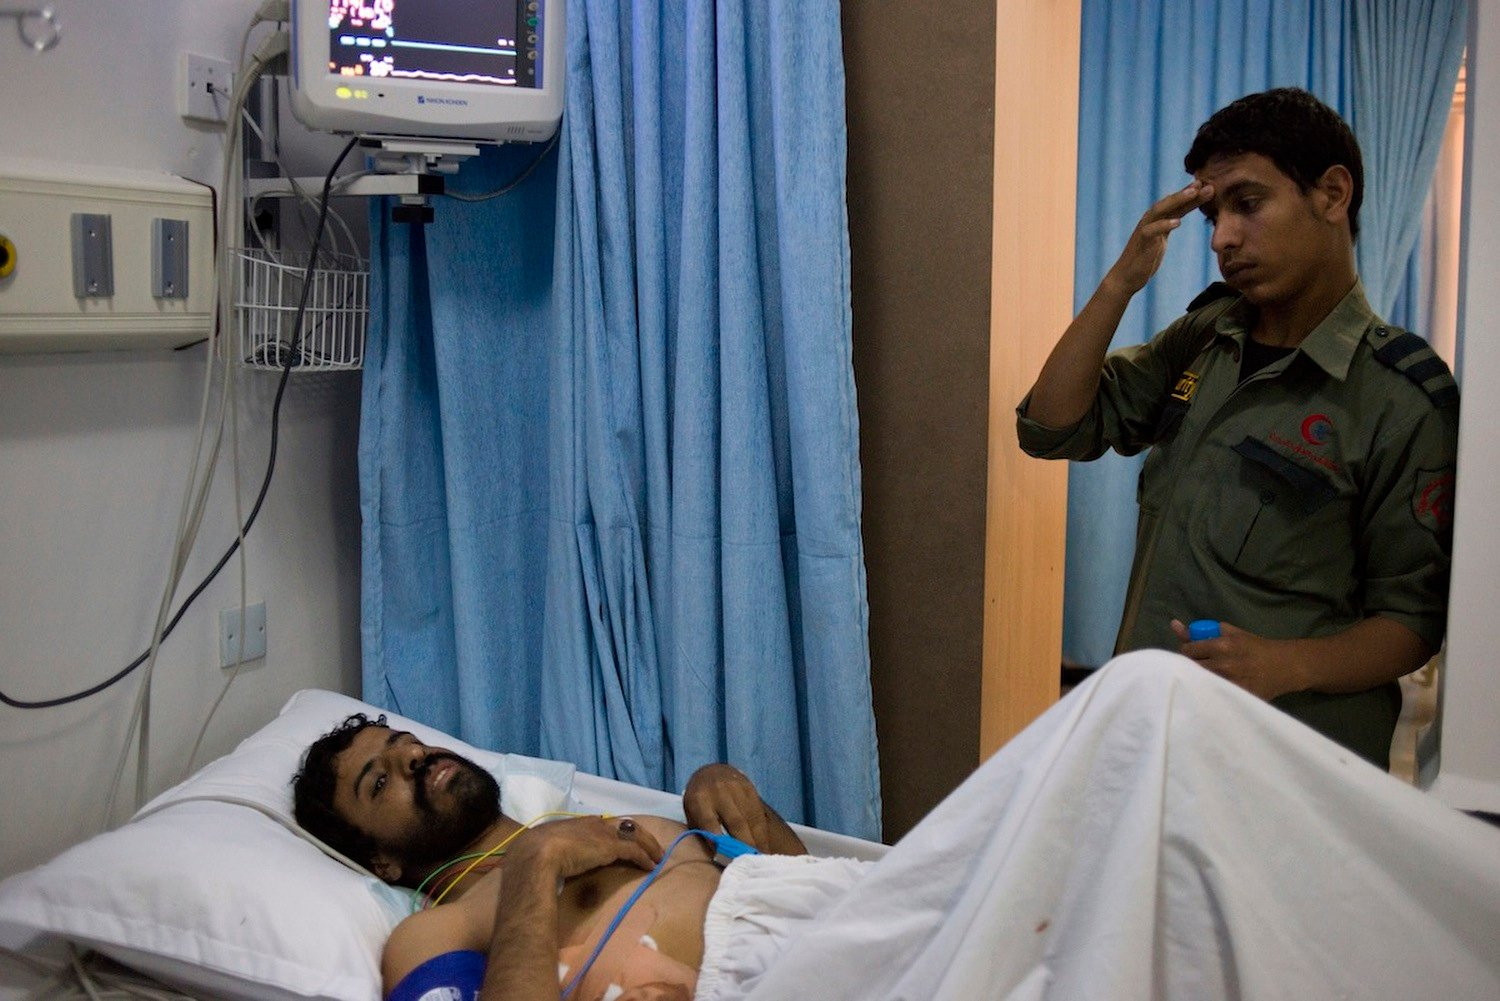 A Yemeni man lies in Moaiyed Hospital after being shot by state security forces at a Houthi protest camp in Sana'a.